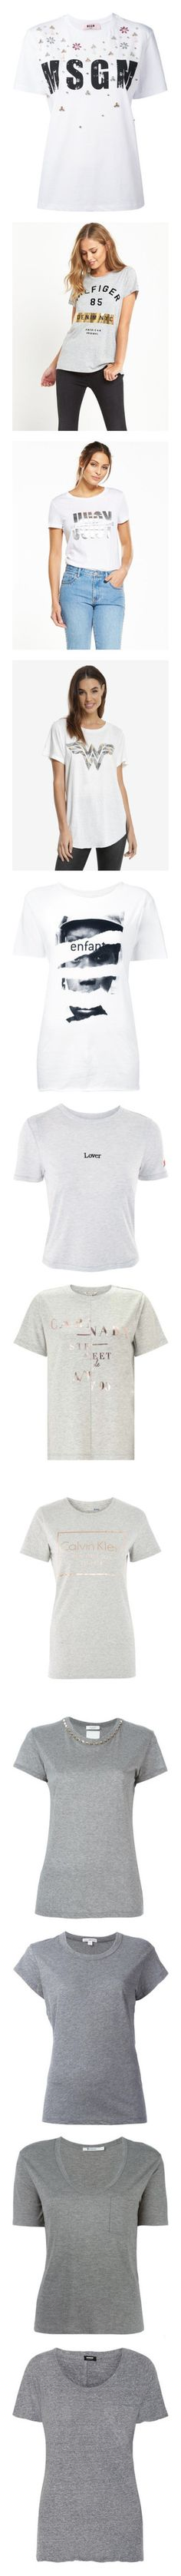 """""""T"""" by aliceridler ❤ liked on Polyvore featuring tops, t-shirts, white, white cotton tee, beaded top, white beaded top, logo tee, white cotton t shirts, slim fitted t shirts and white tops"""